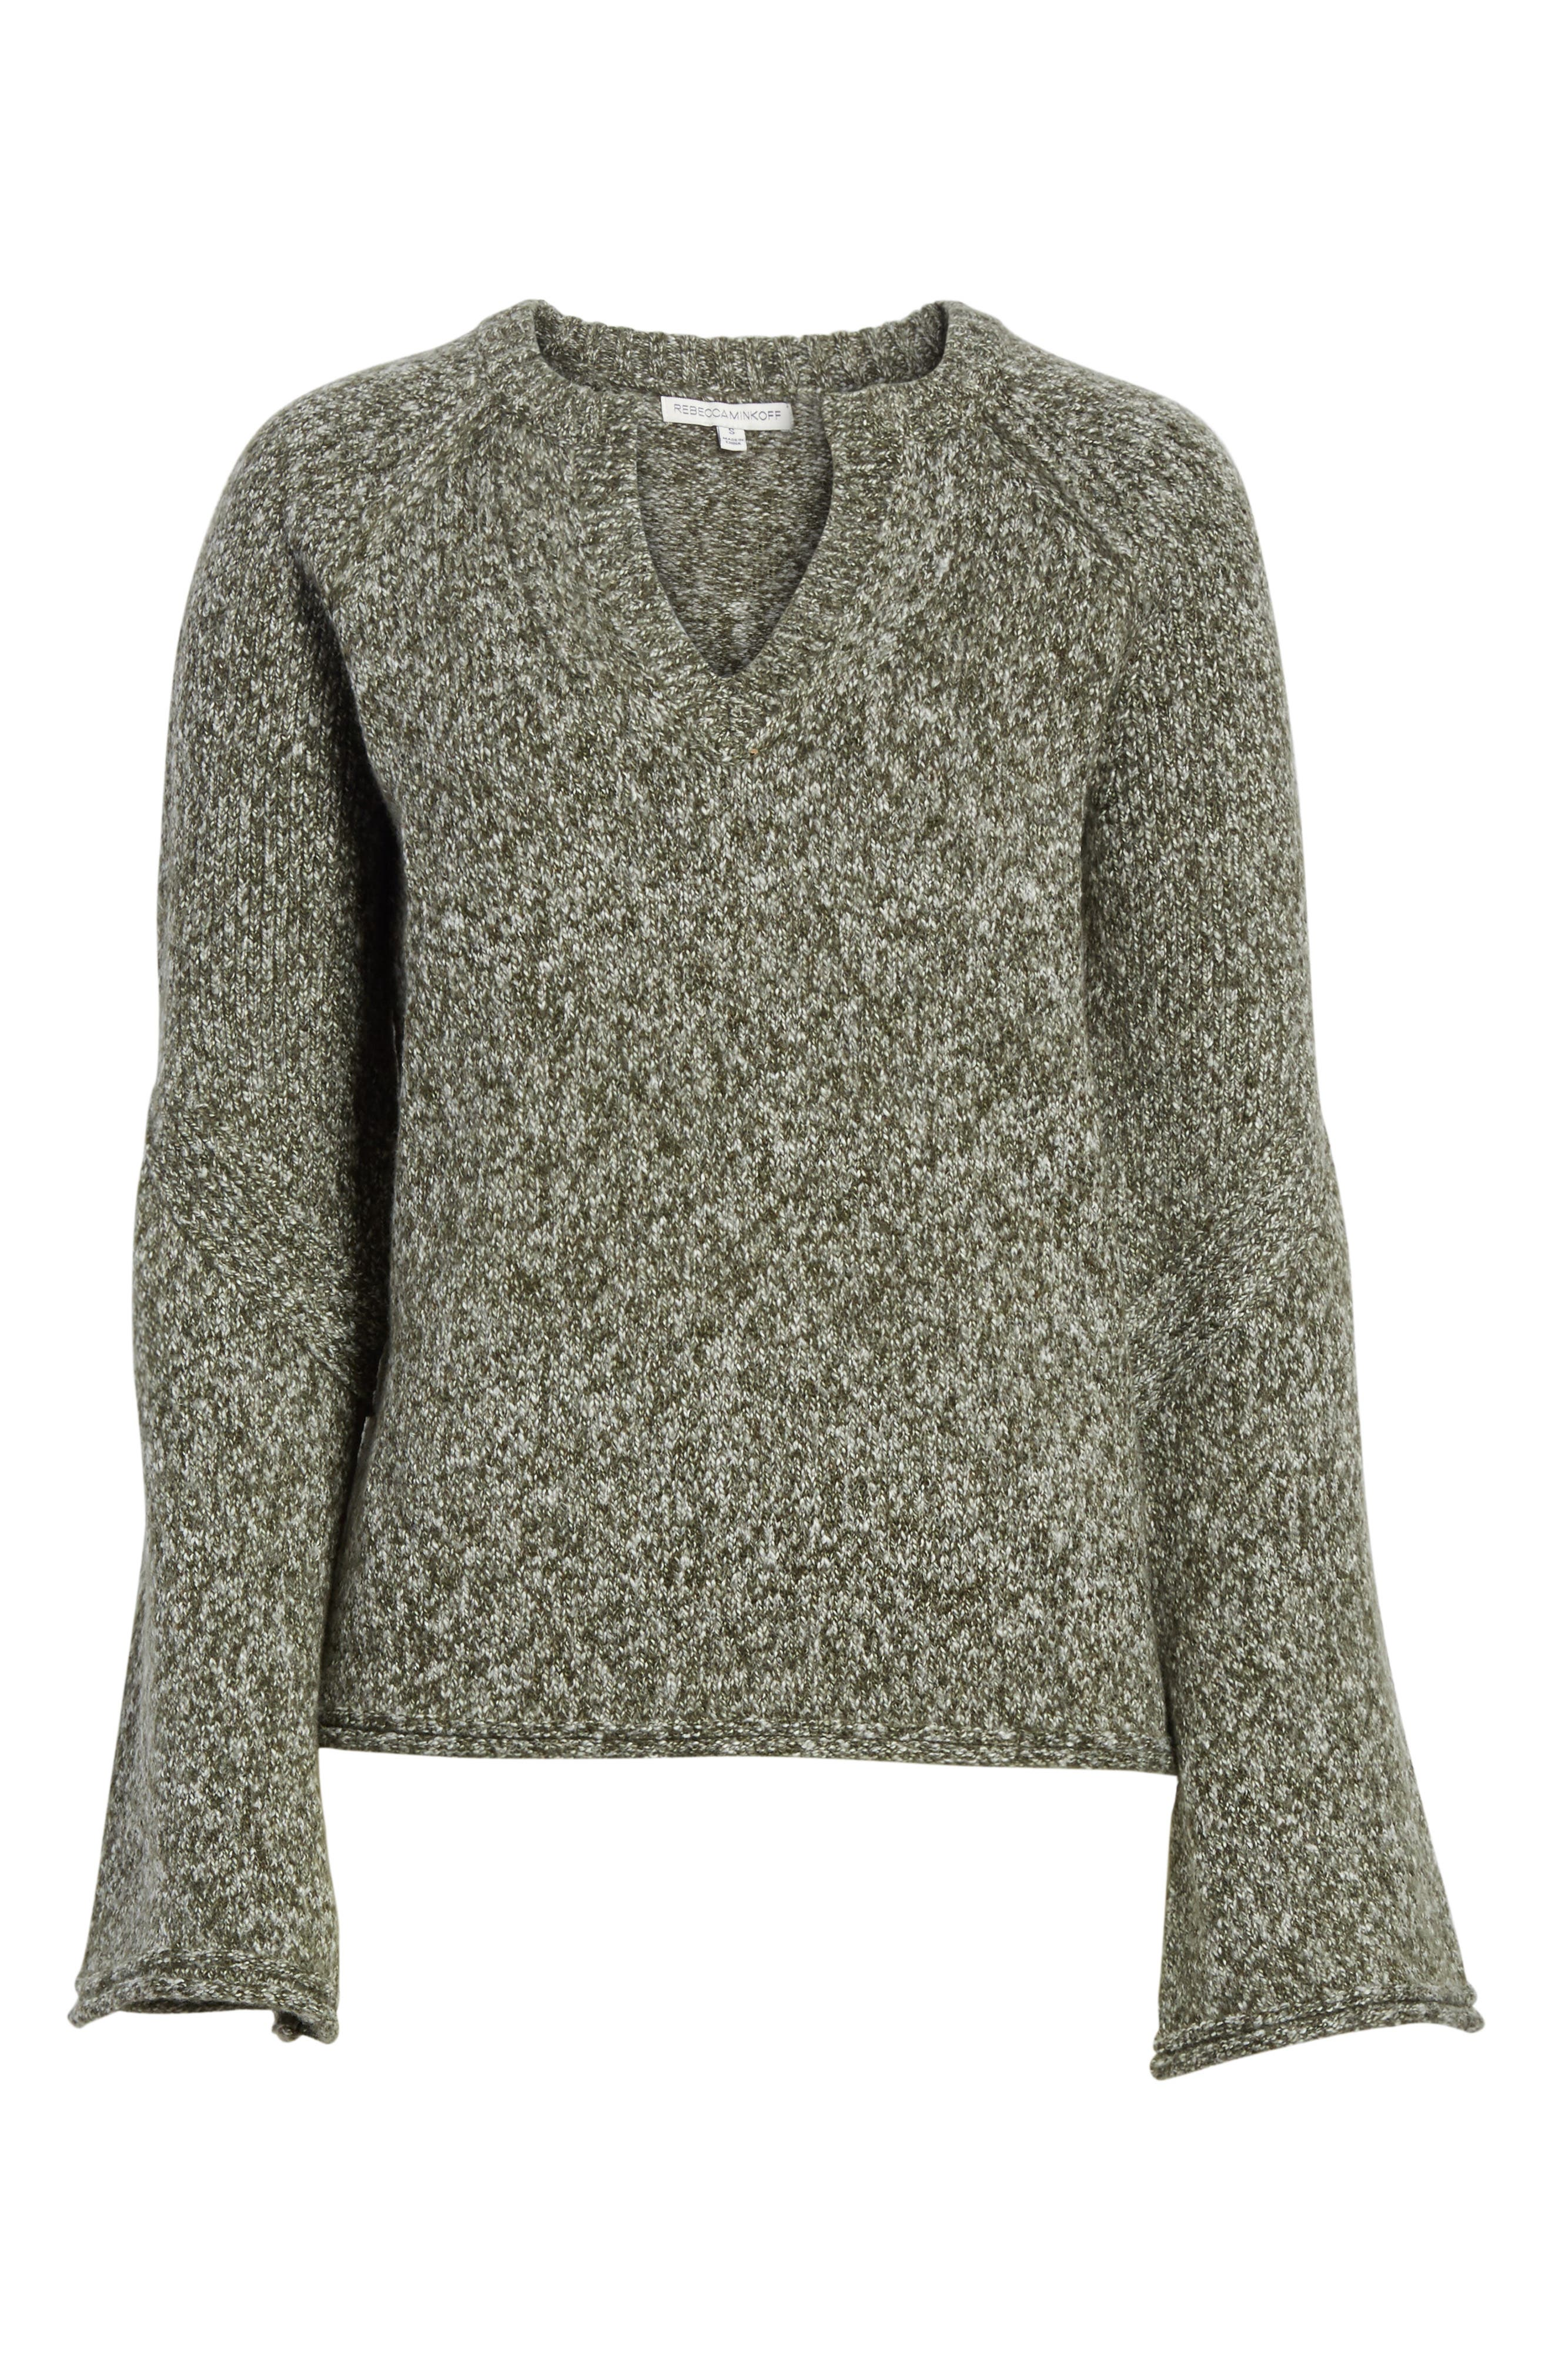 Griffyn Sweater,                             Alternate thumbnail 7, color,                             Military Olive Multi